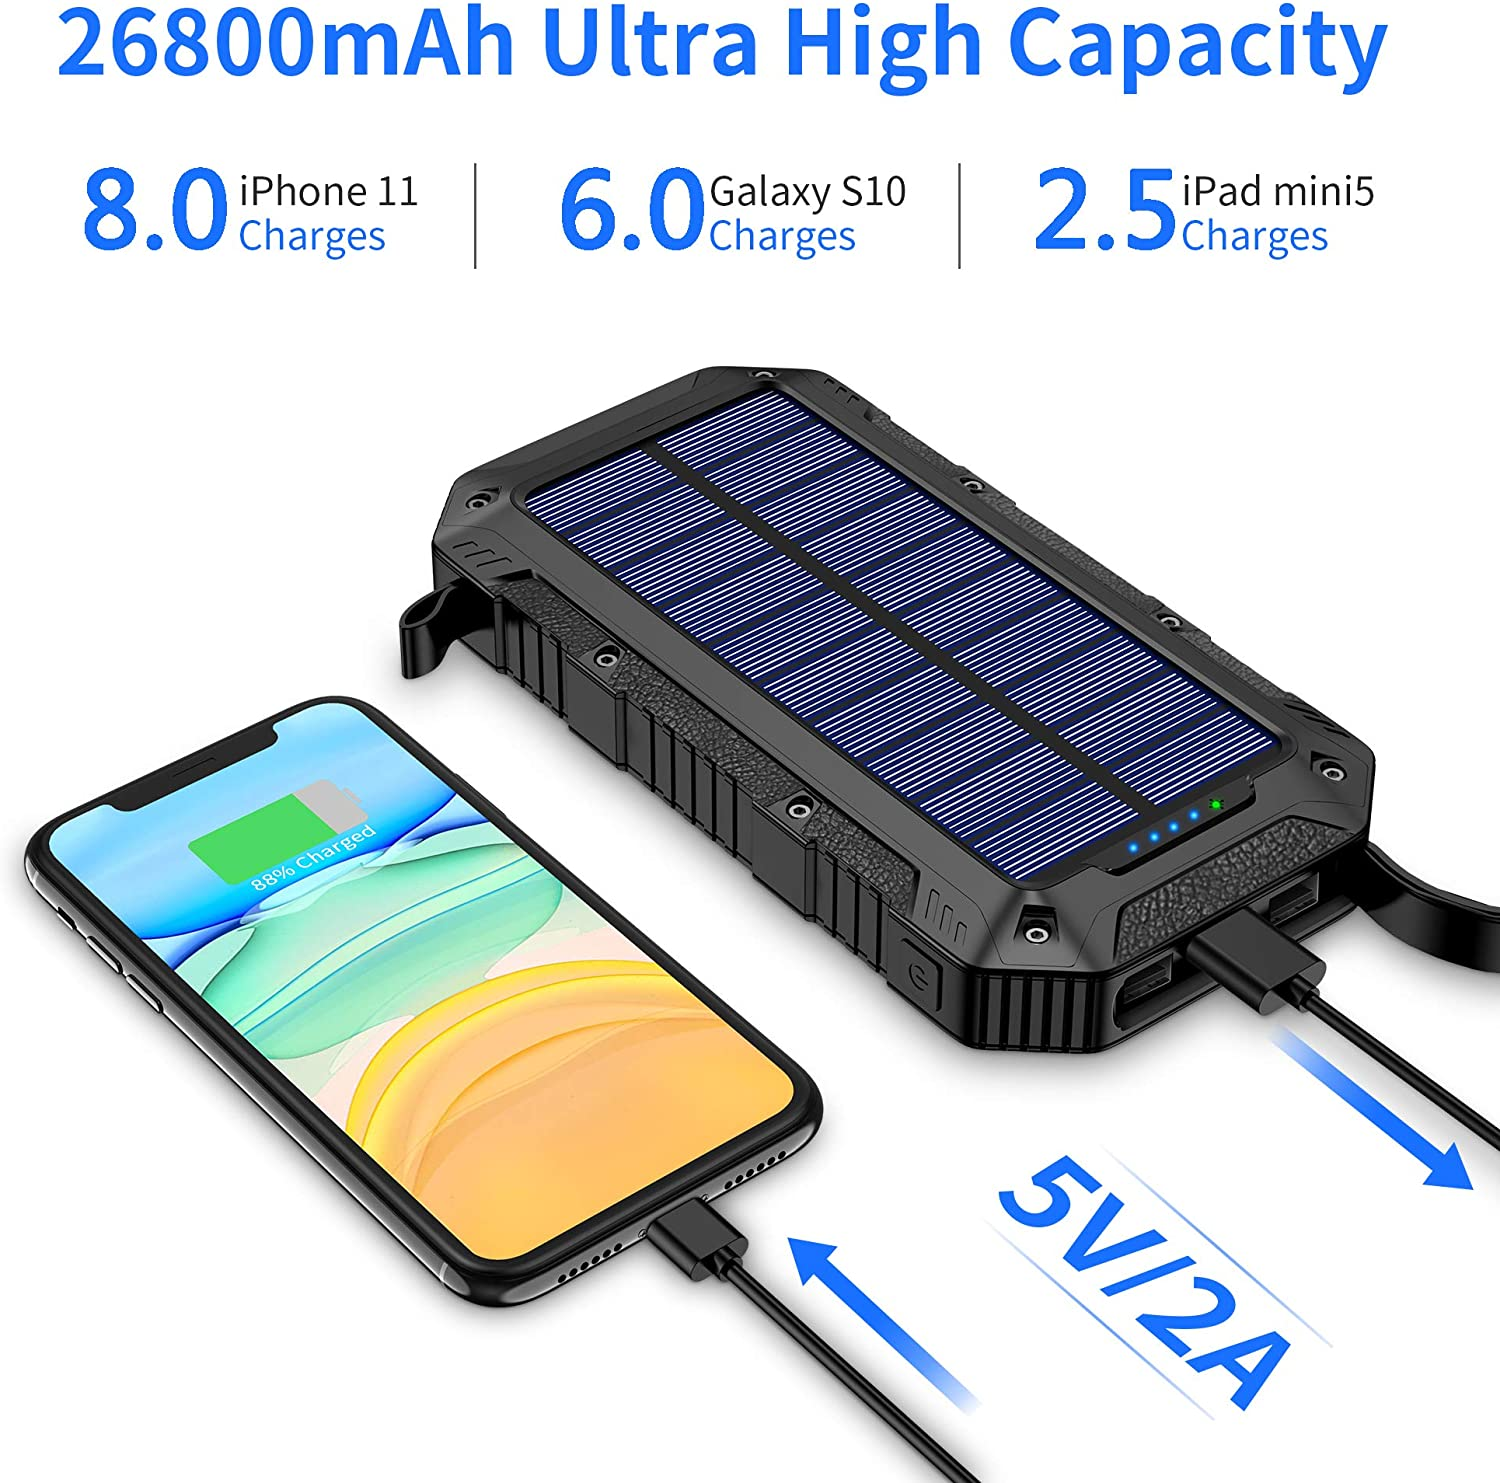 Portable Solar Charger and Power Bank